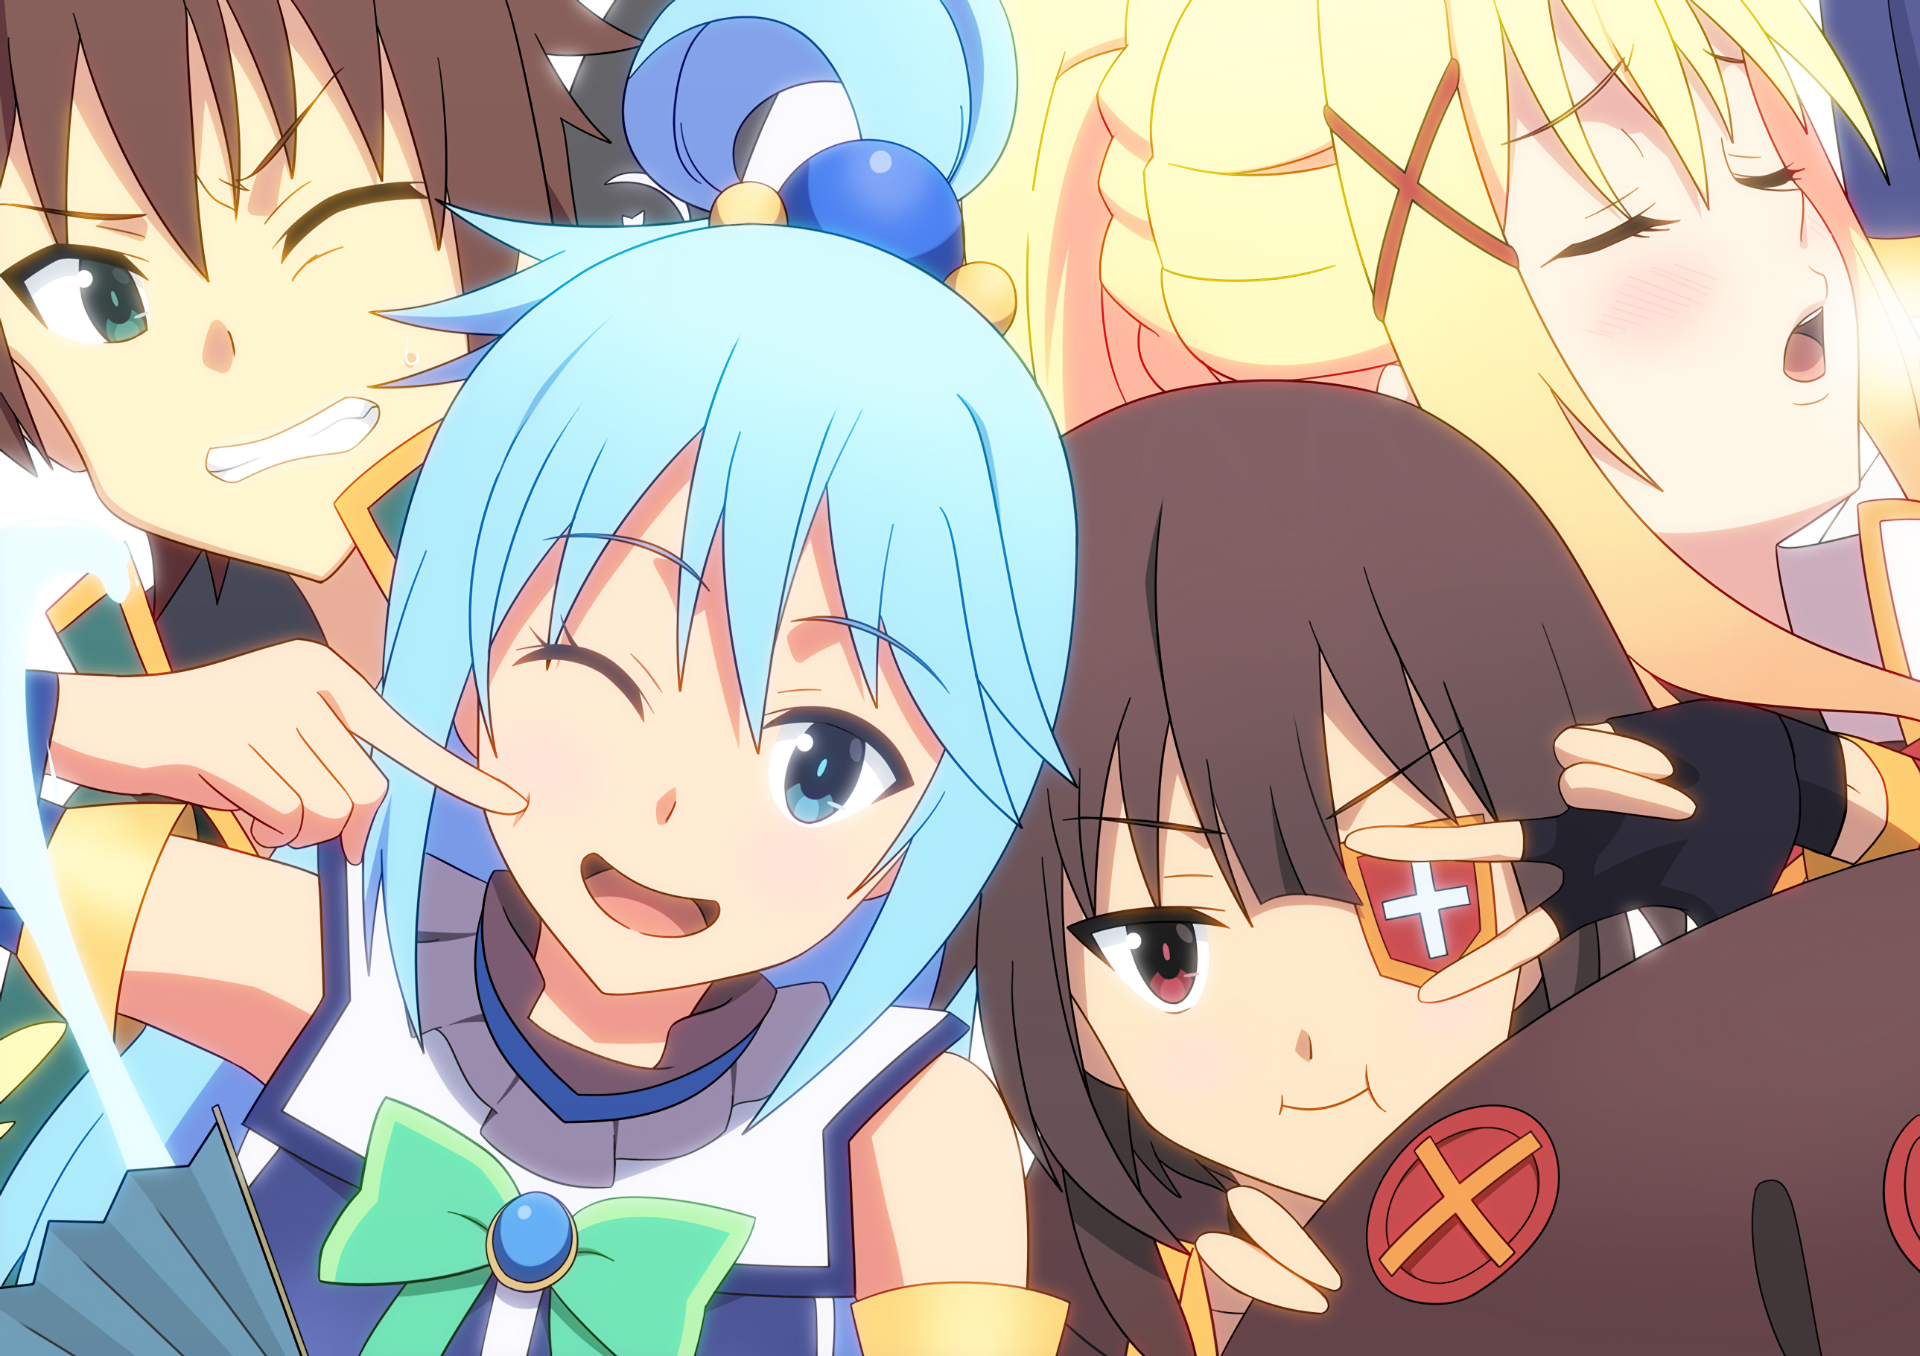 Konosuba is pretty loved not as much for its action scenes or plot but for its comedy it revolves around kazuma a guy who had died pathetically and was